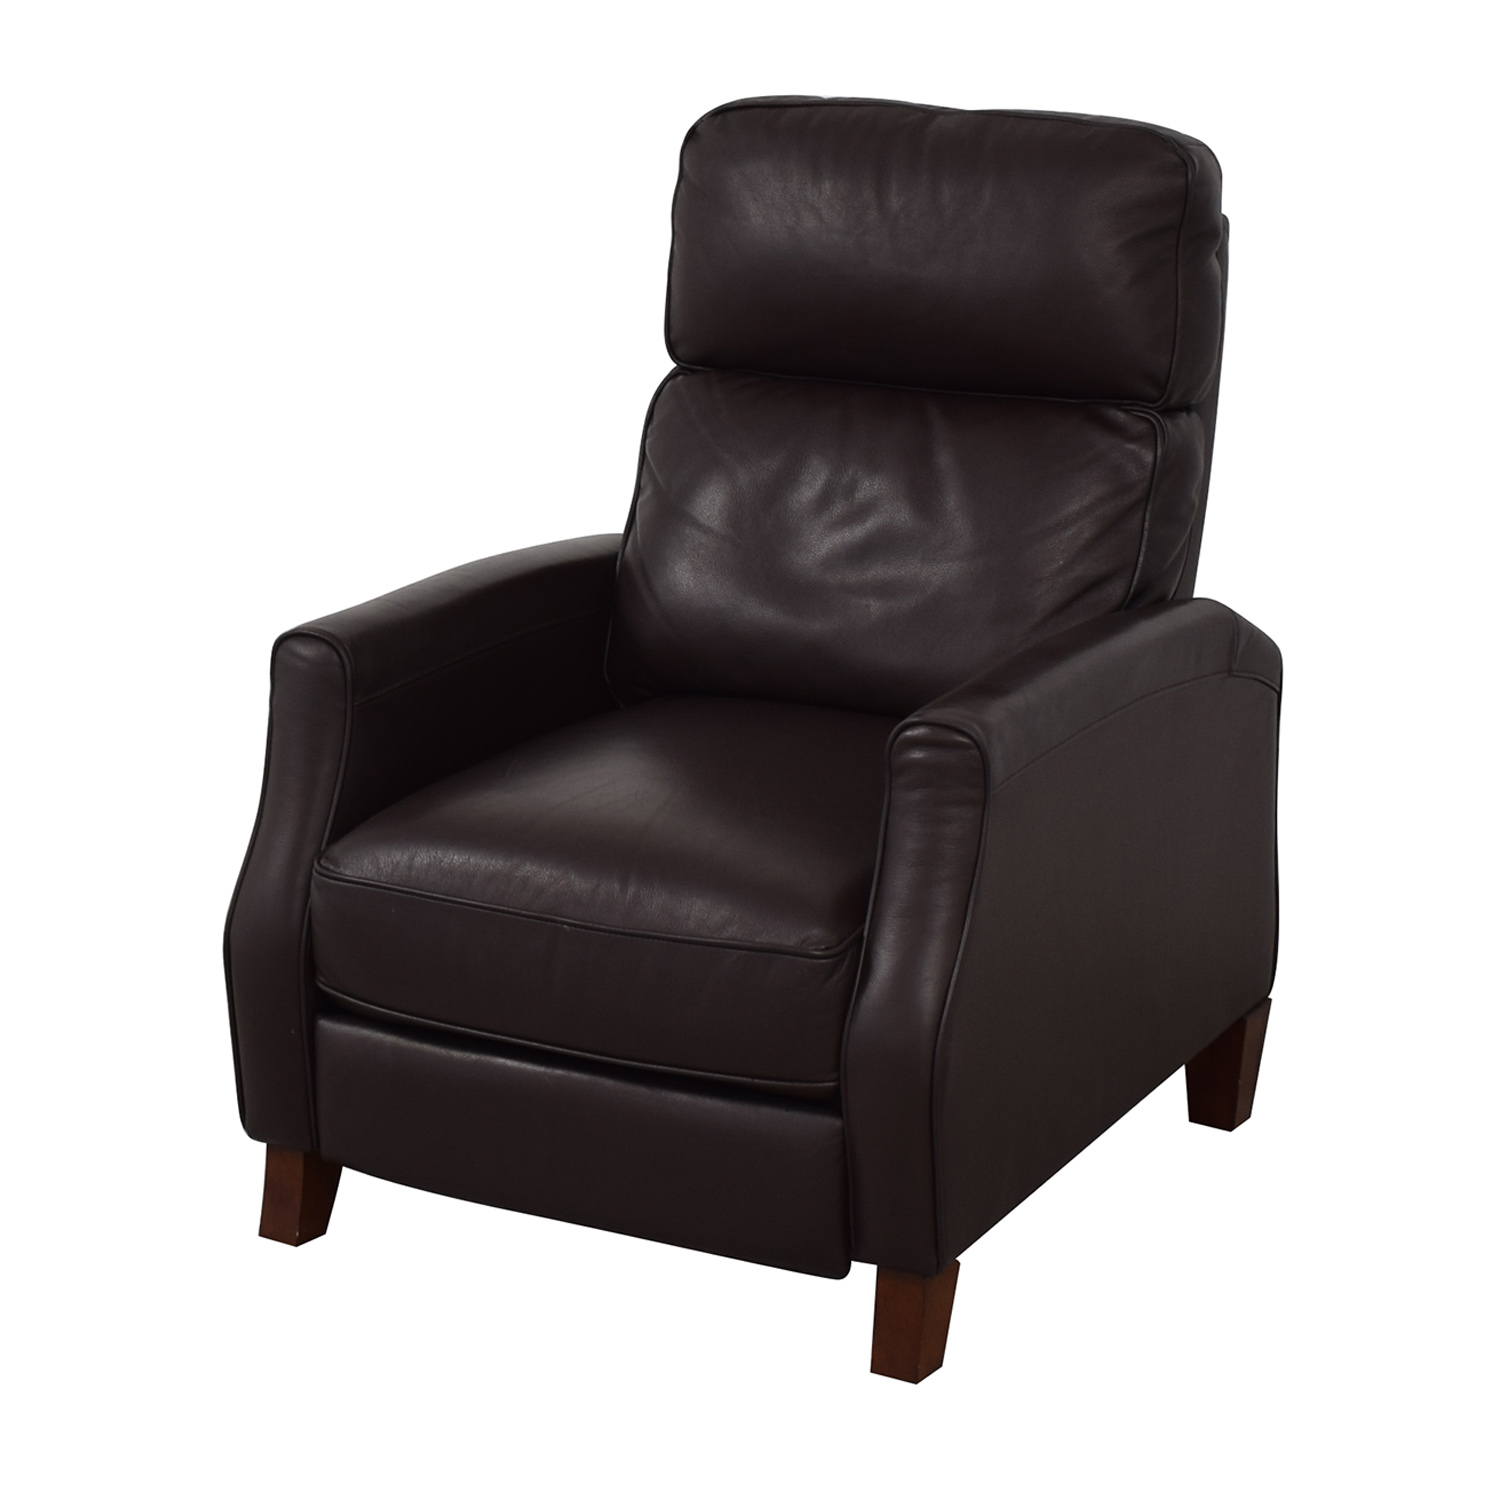 Macy's Leather Recliner / Recliners